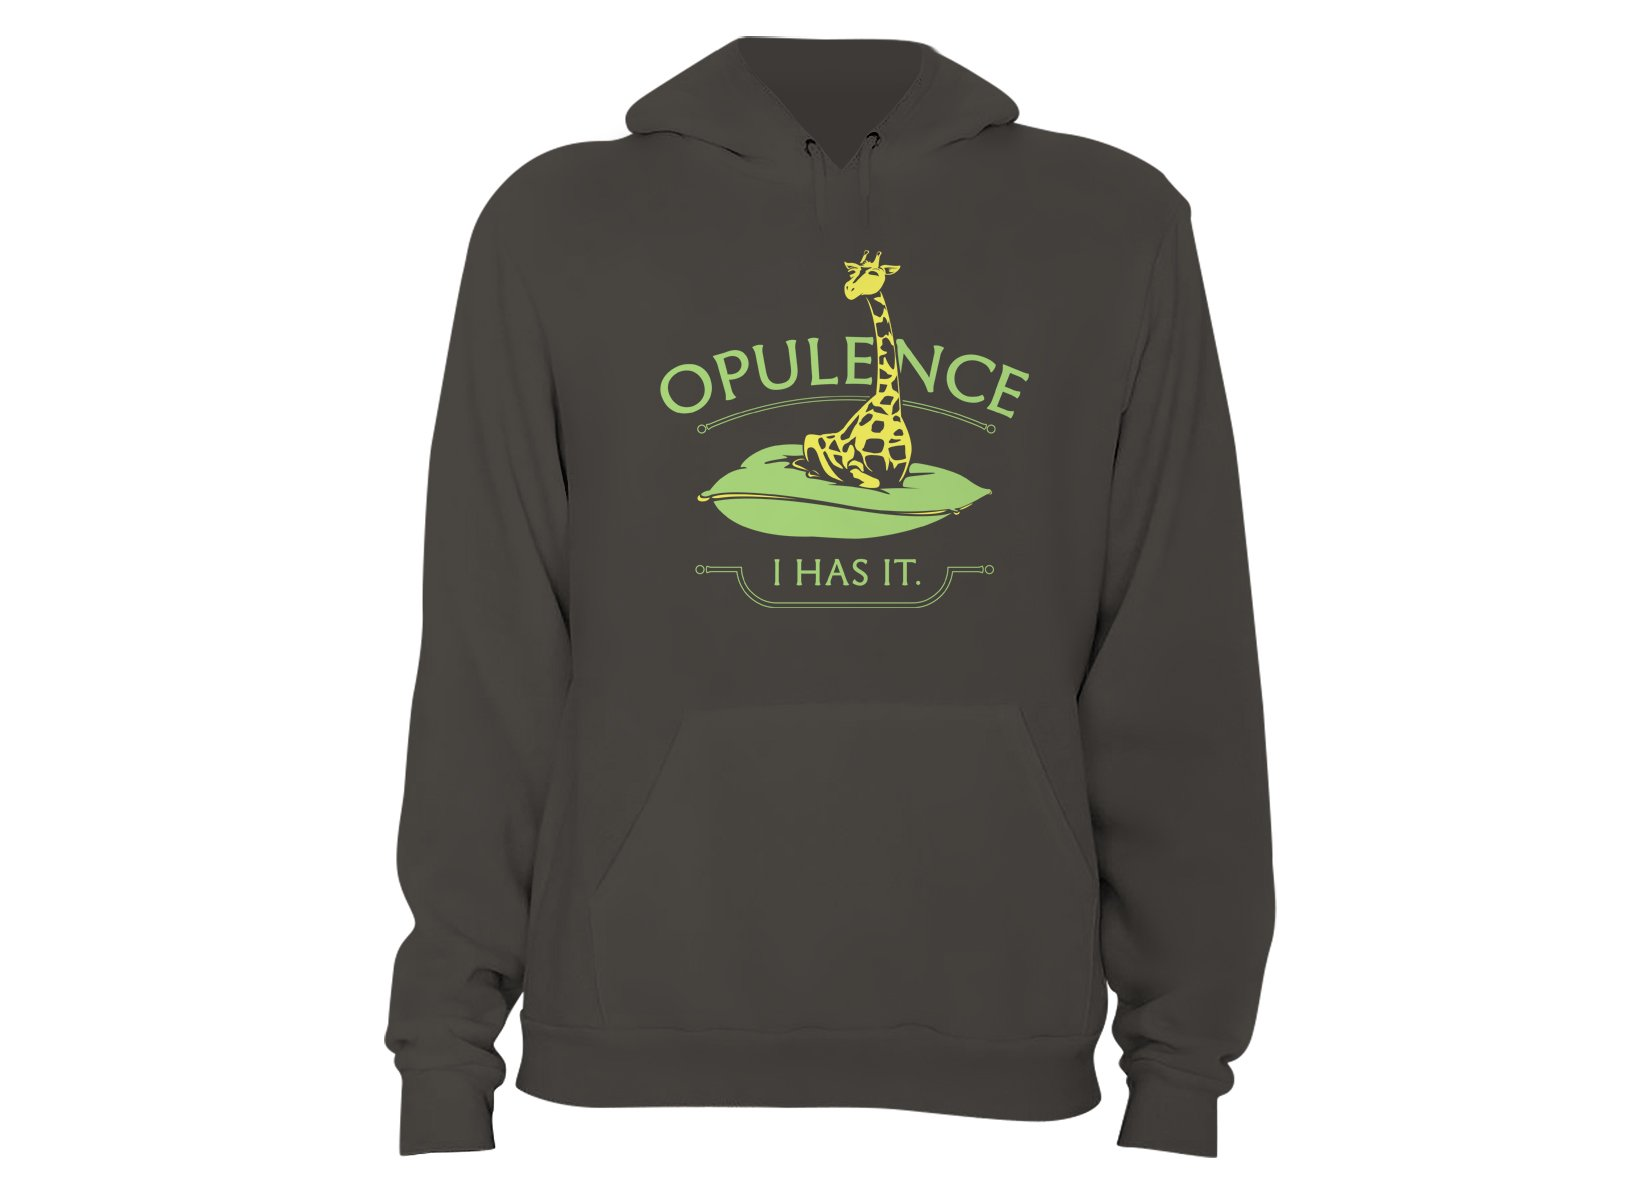 Opulence, I Has It. on Hoodie